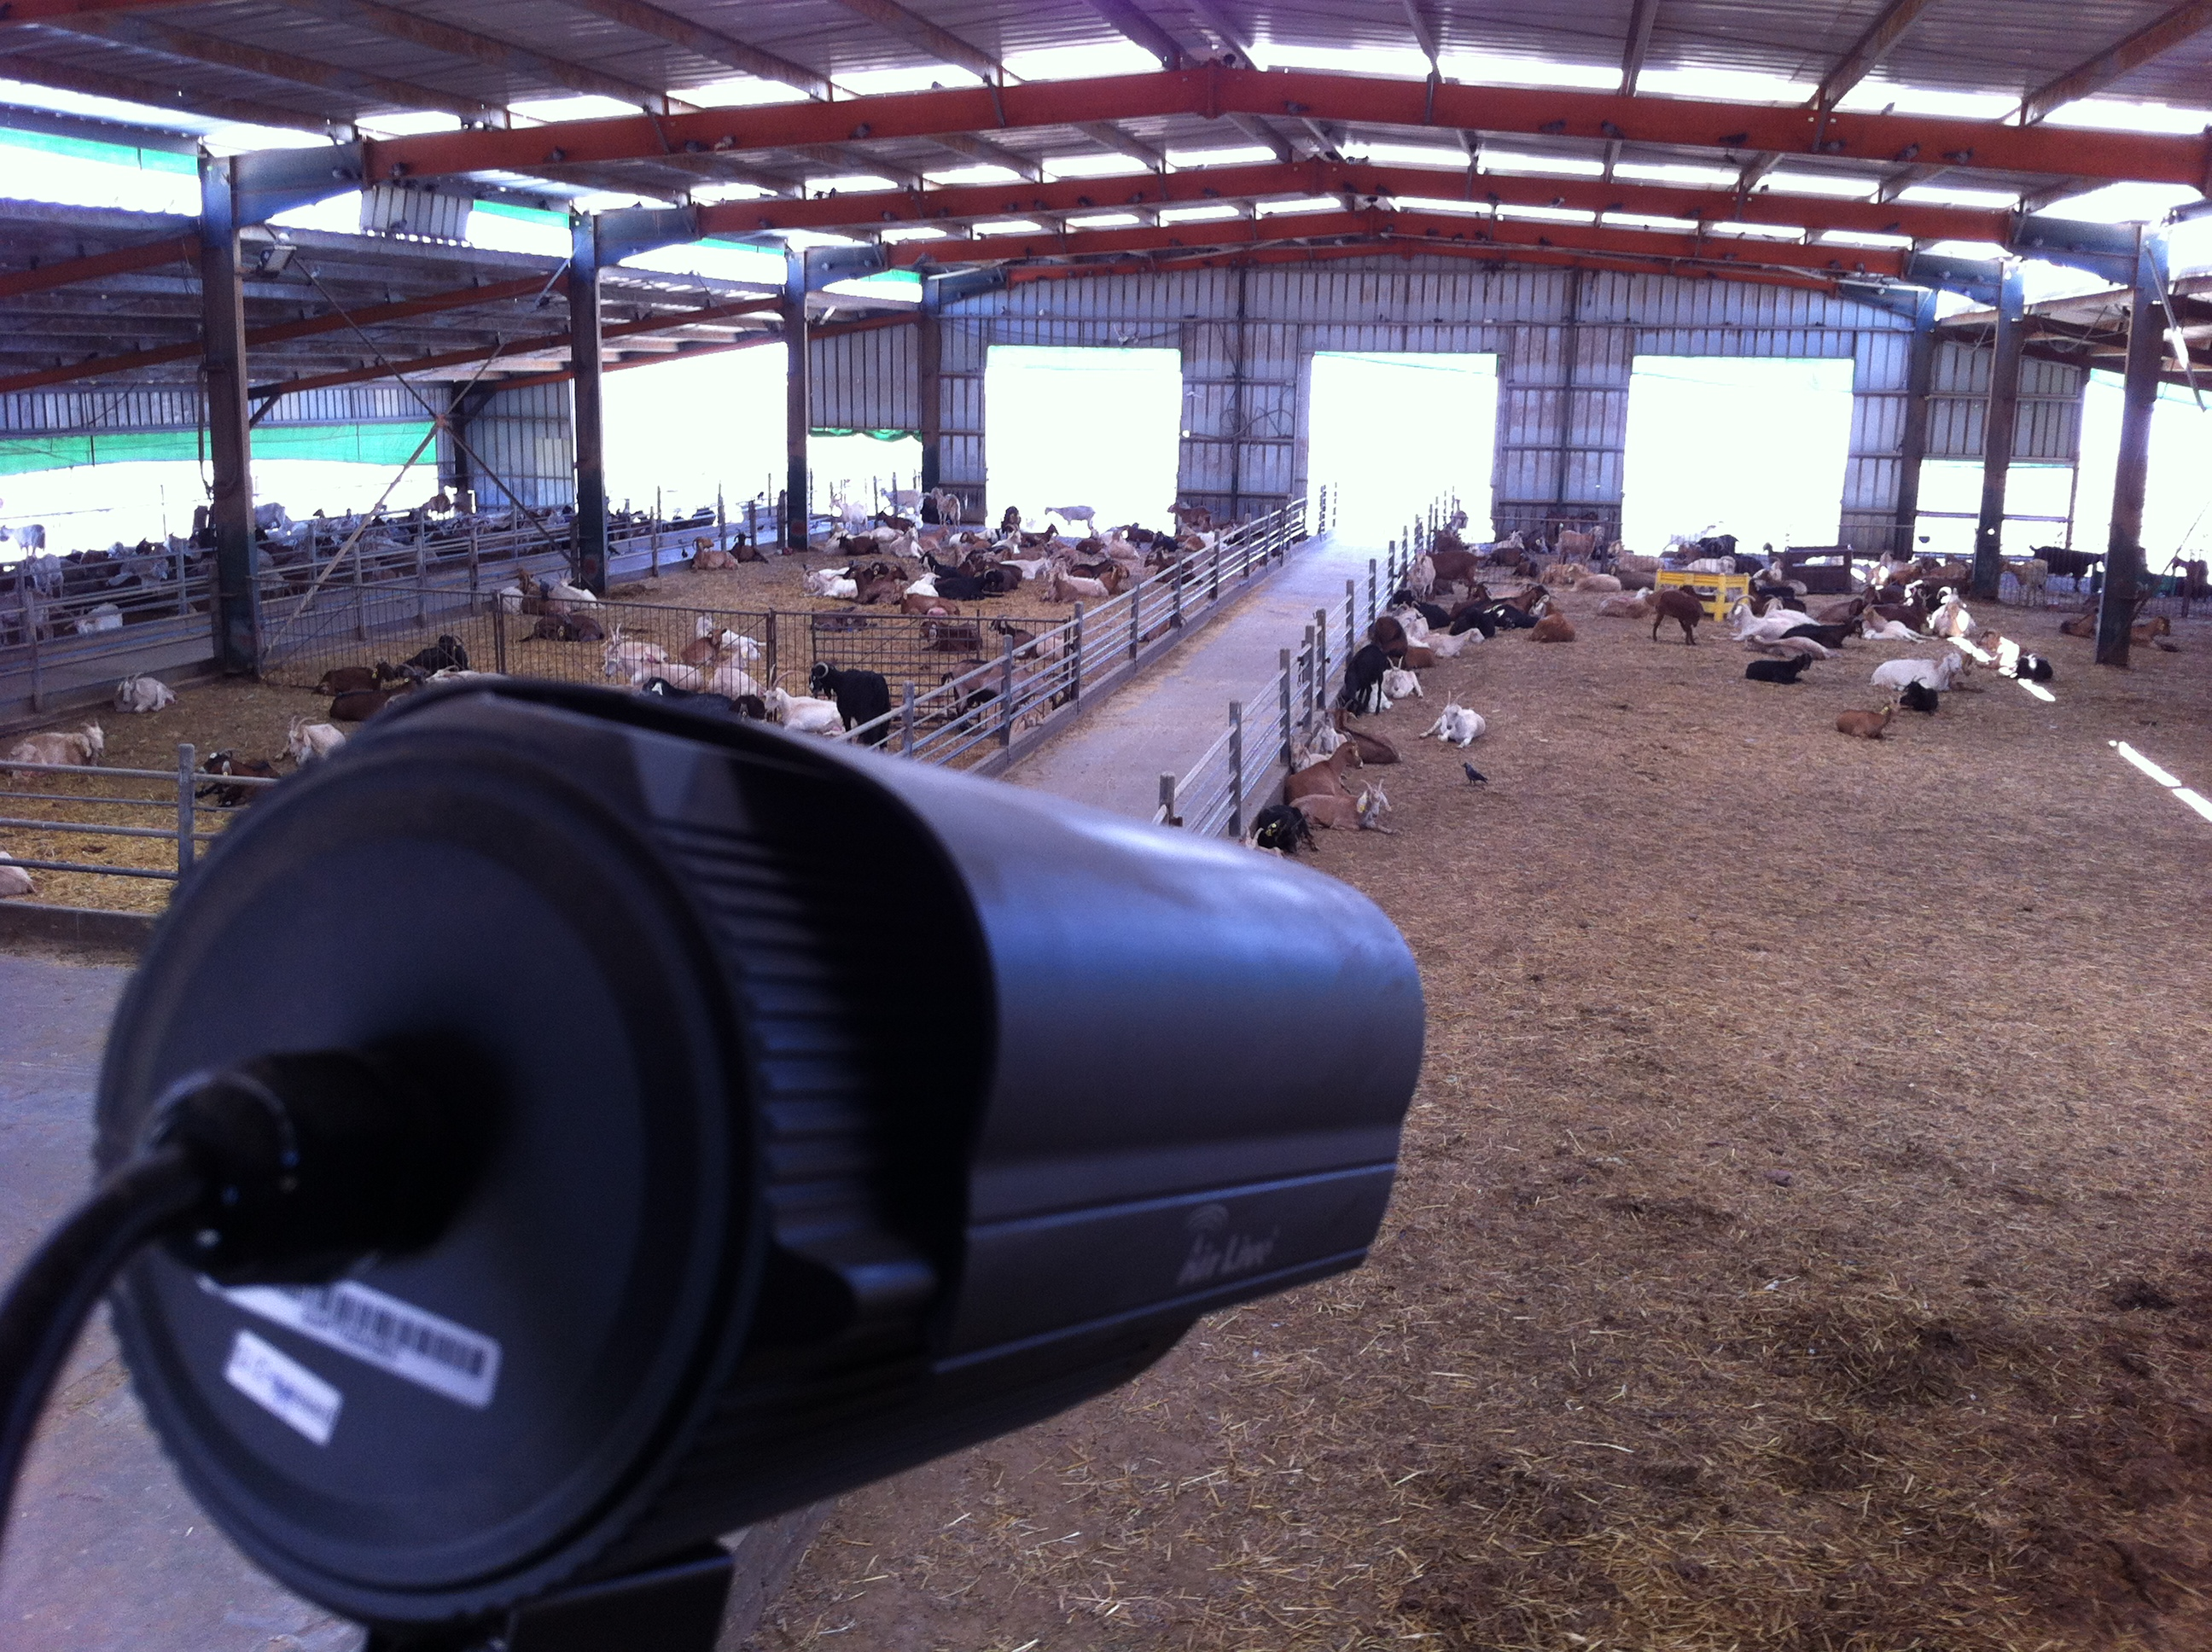 Wireless Network for Internet Access and Video Security Solution in a Farm